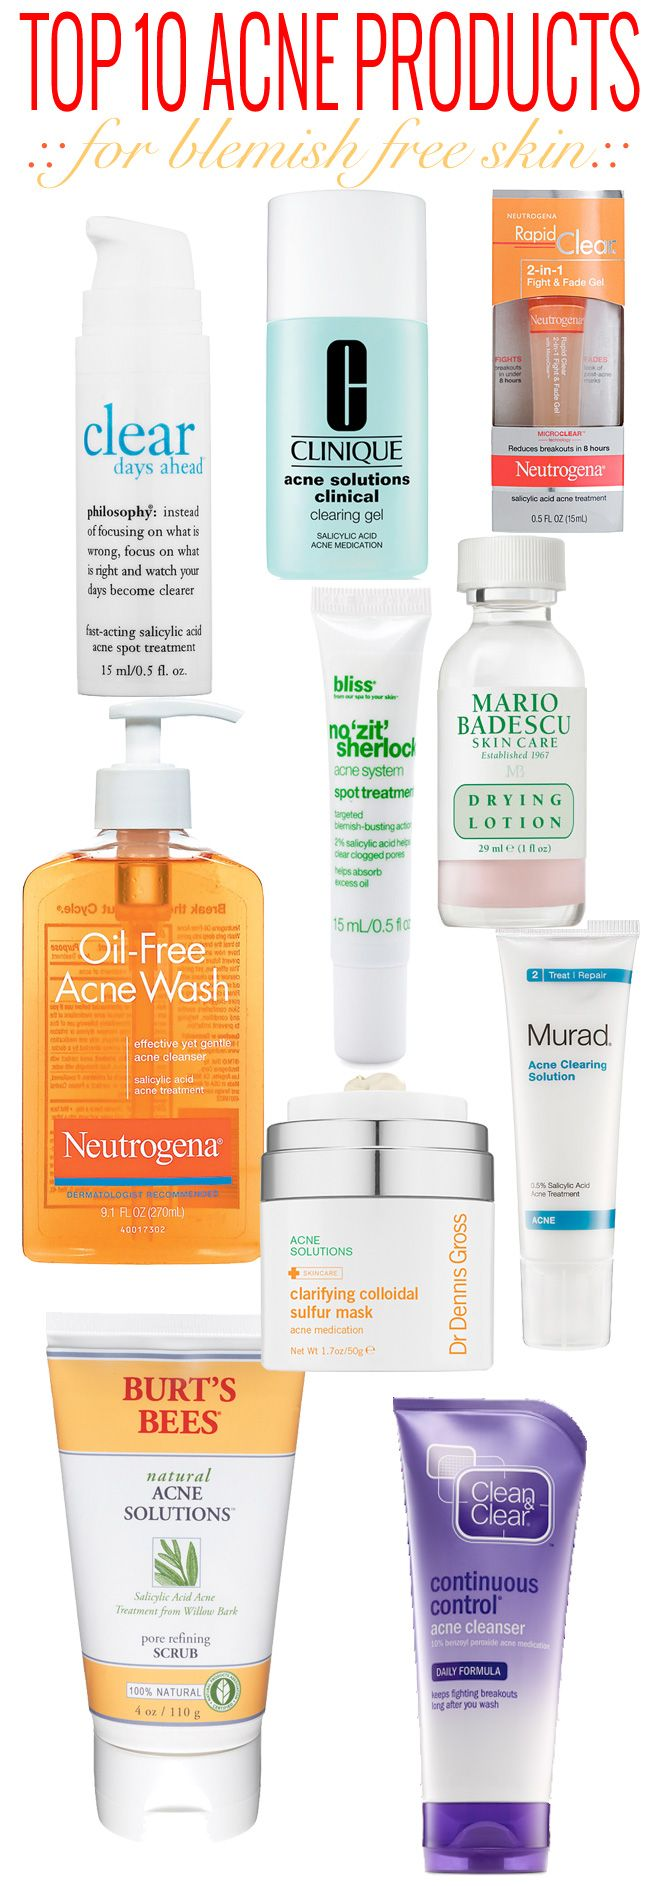 The Best Acne Products To Get Rid Of Pimples And Blemishes Fast